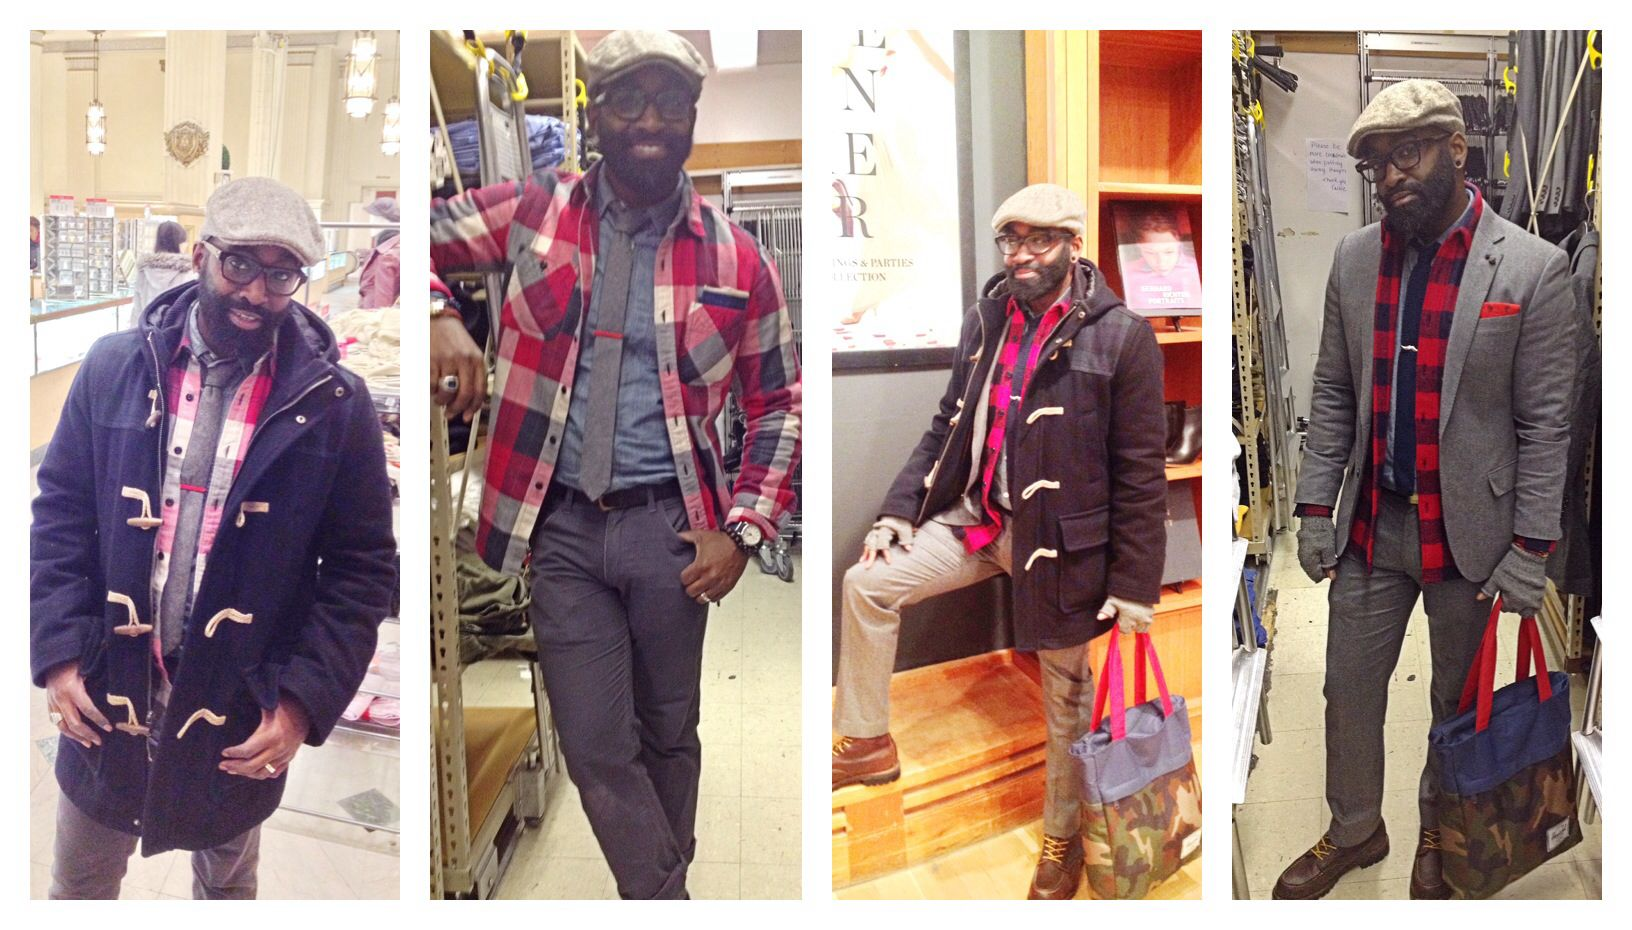 Winter has been brutal! Trying to stay stylish in it has been just as hard, but with the help of JCrew's Ludlow some Flannel, and some Redwings I trekked through!